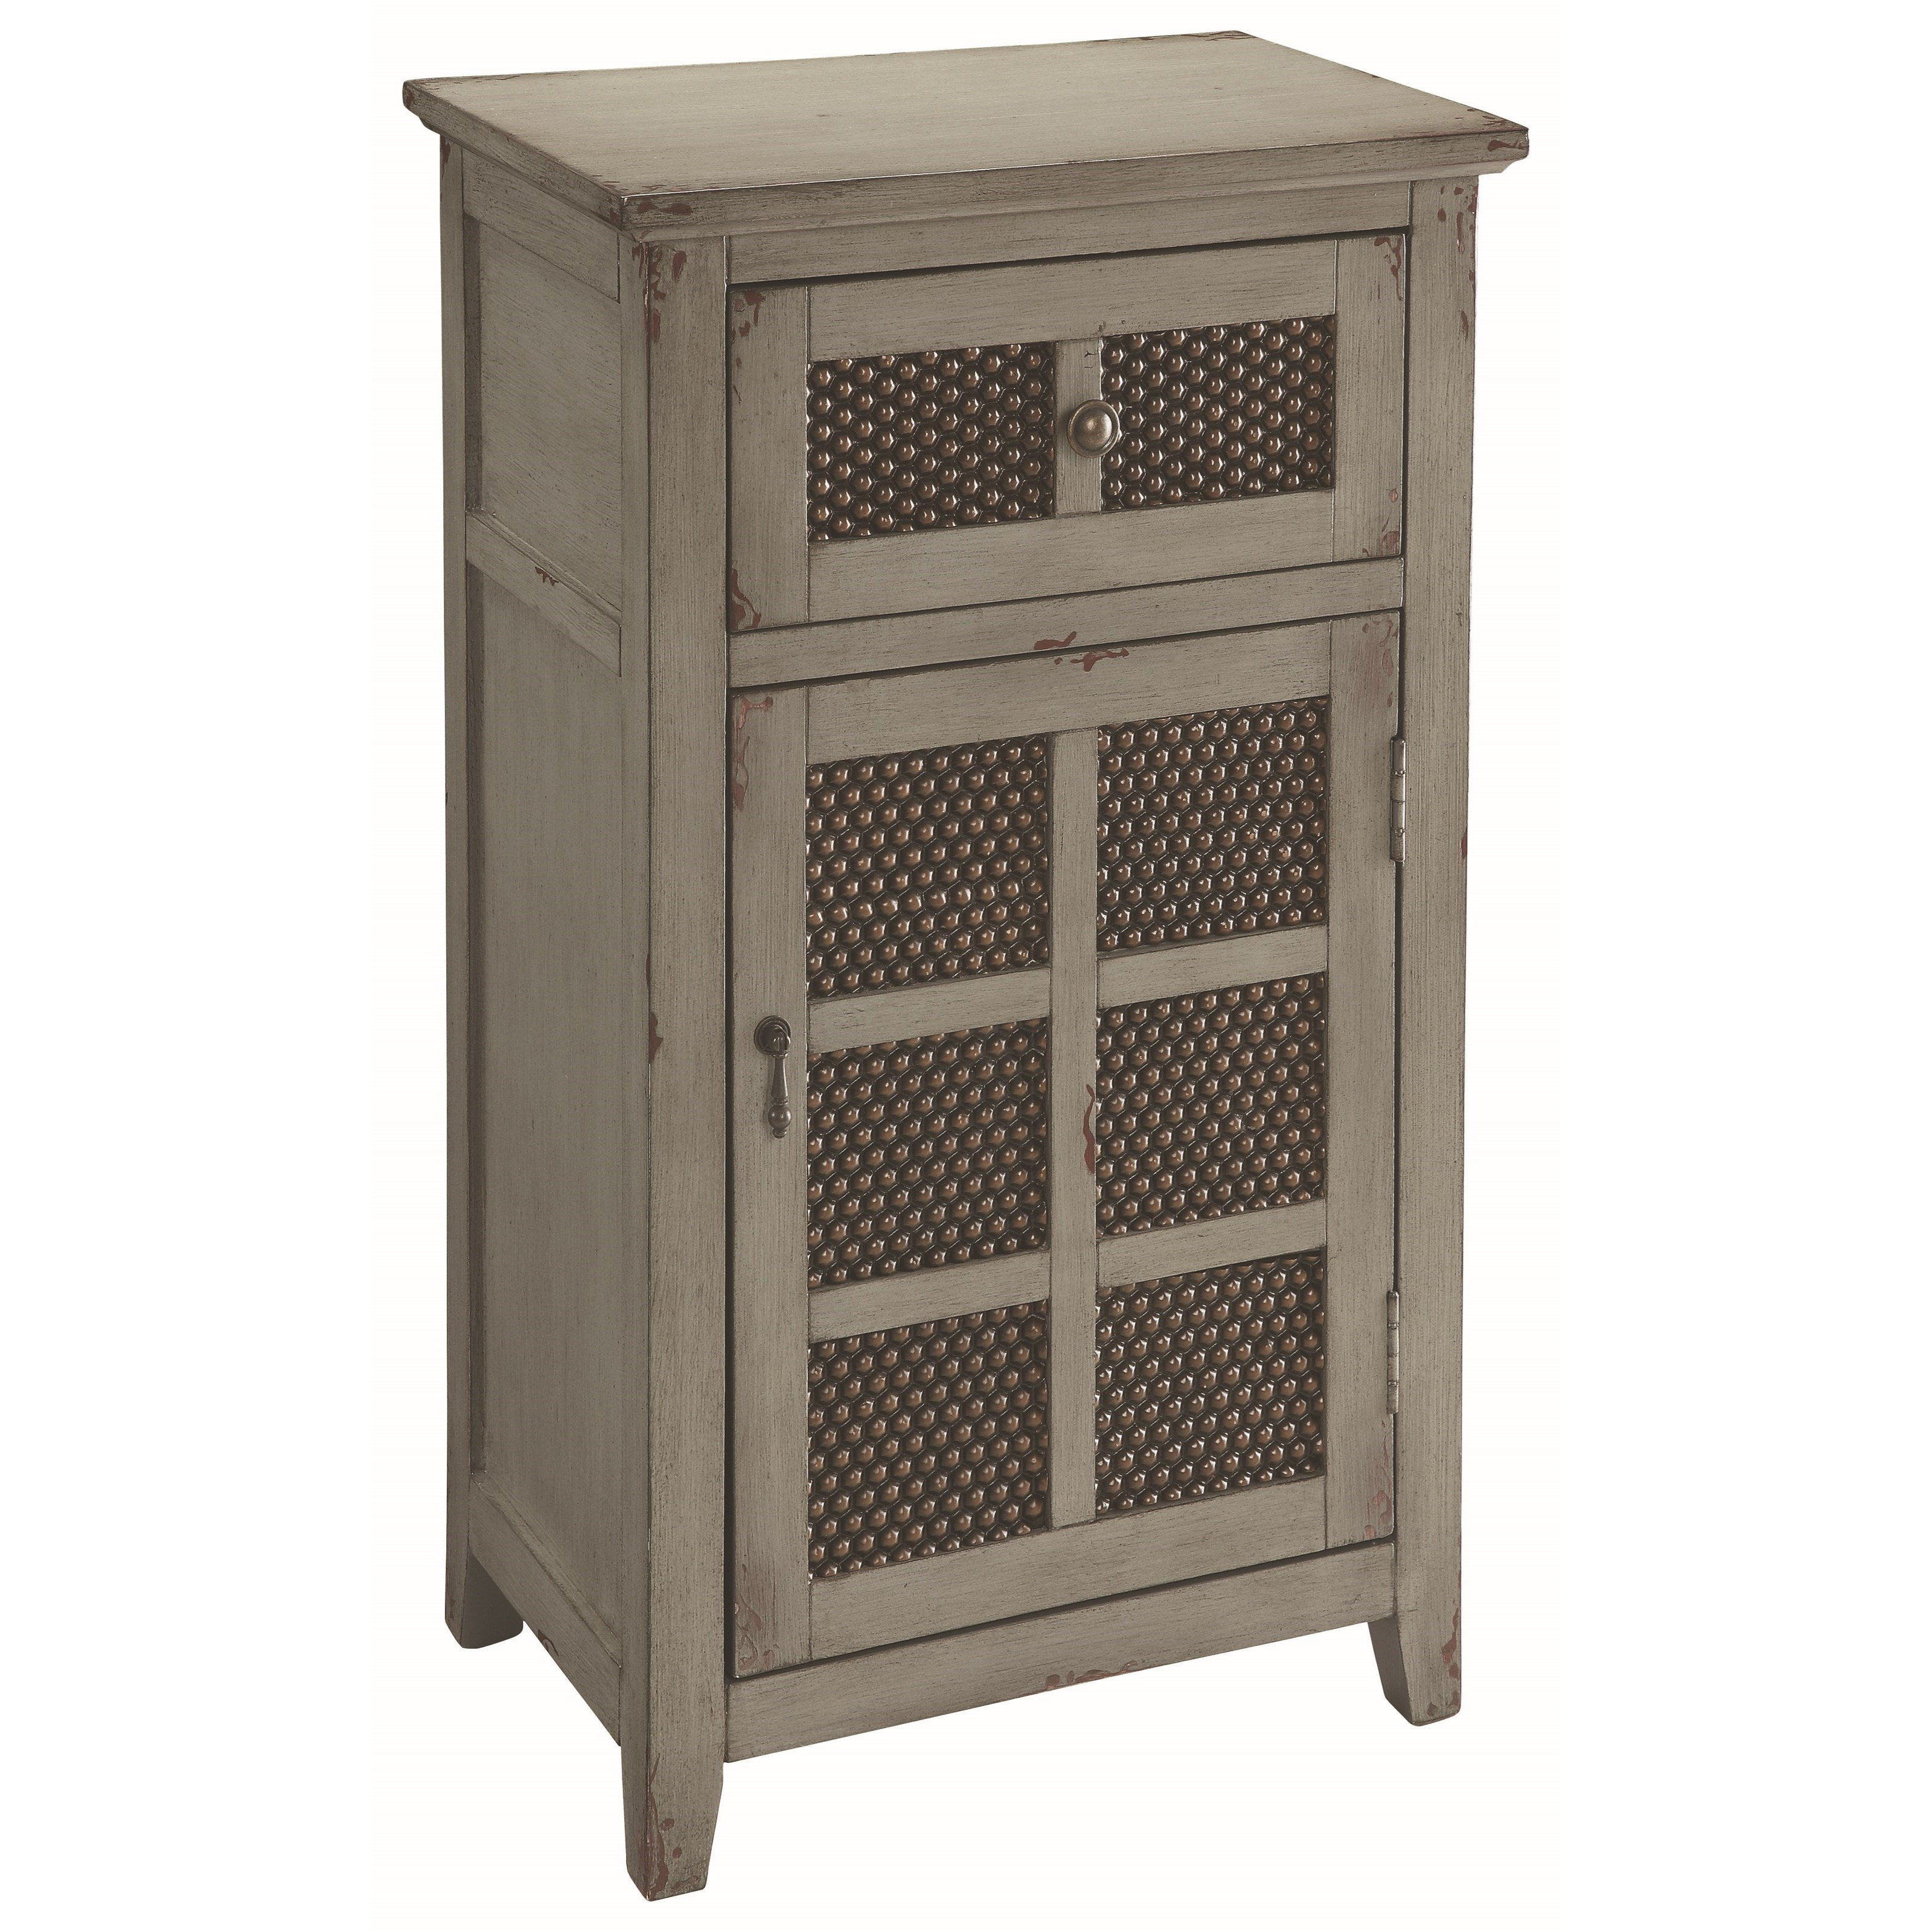 Coaster Accent Cabinets Cabinet - Item Number: 901501